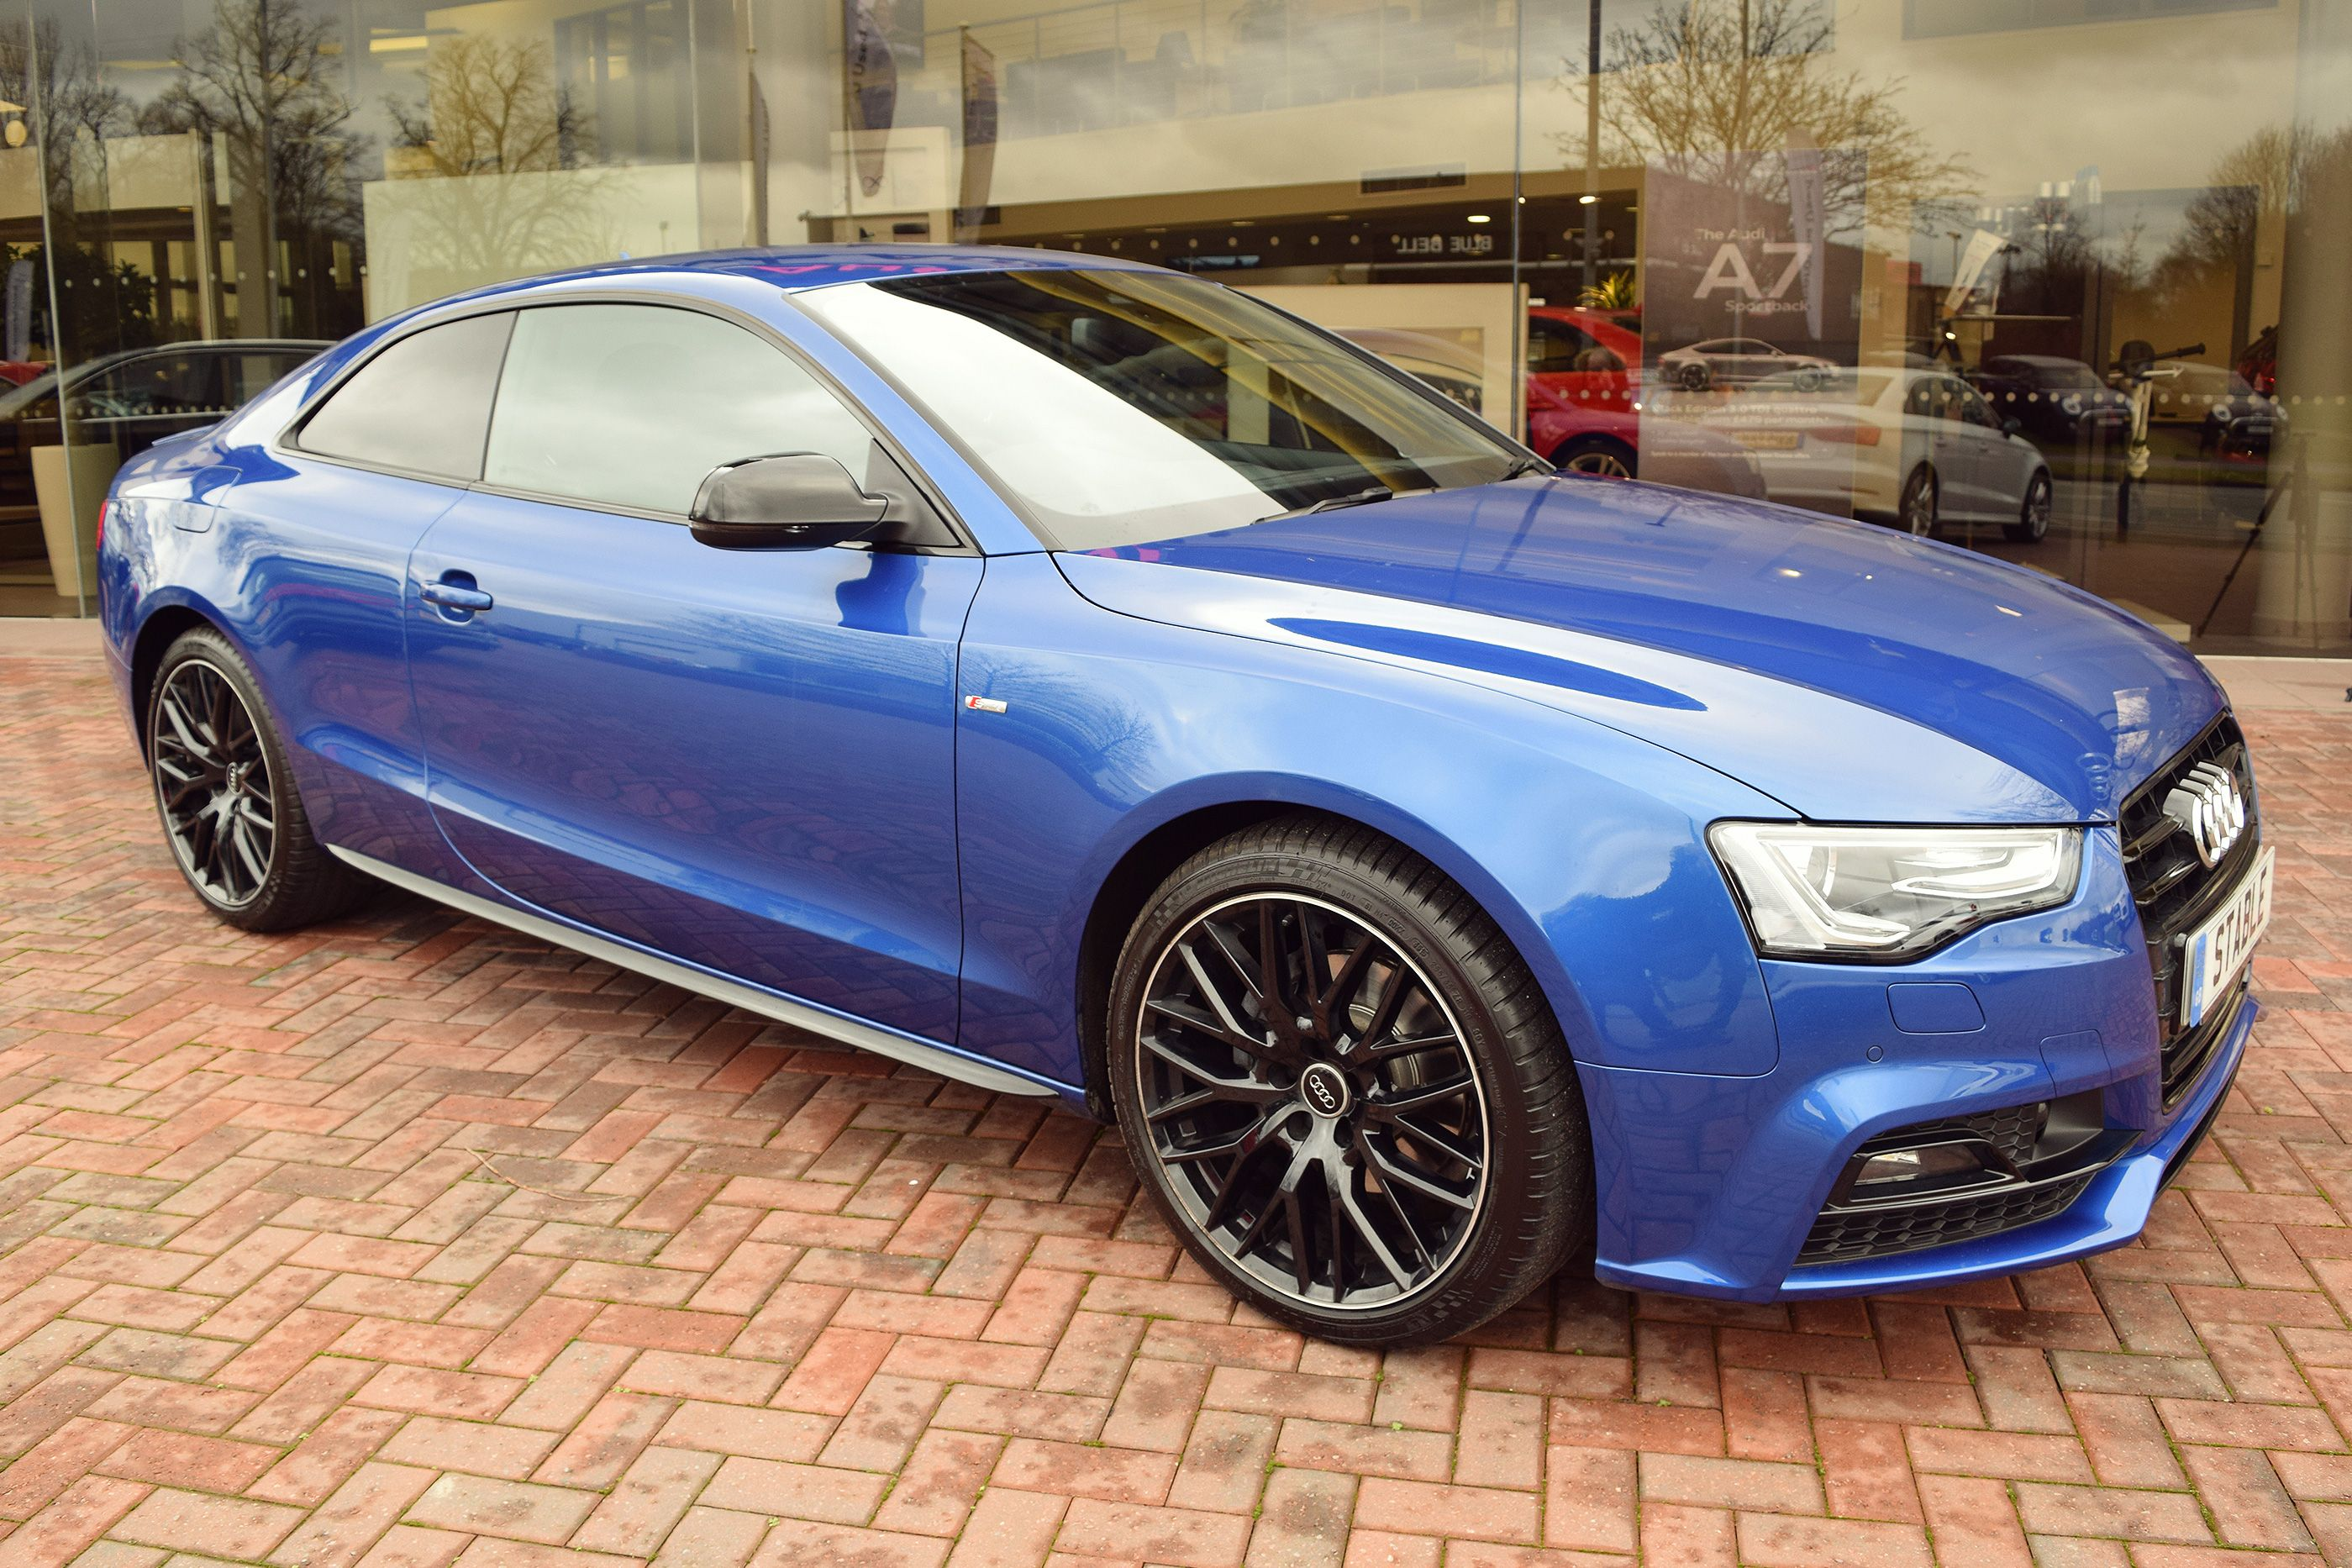 2016 audi a5 coupe black edition plus in sepang blue. Black Bedroom Furniture Sets. Home Design Ideas